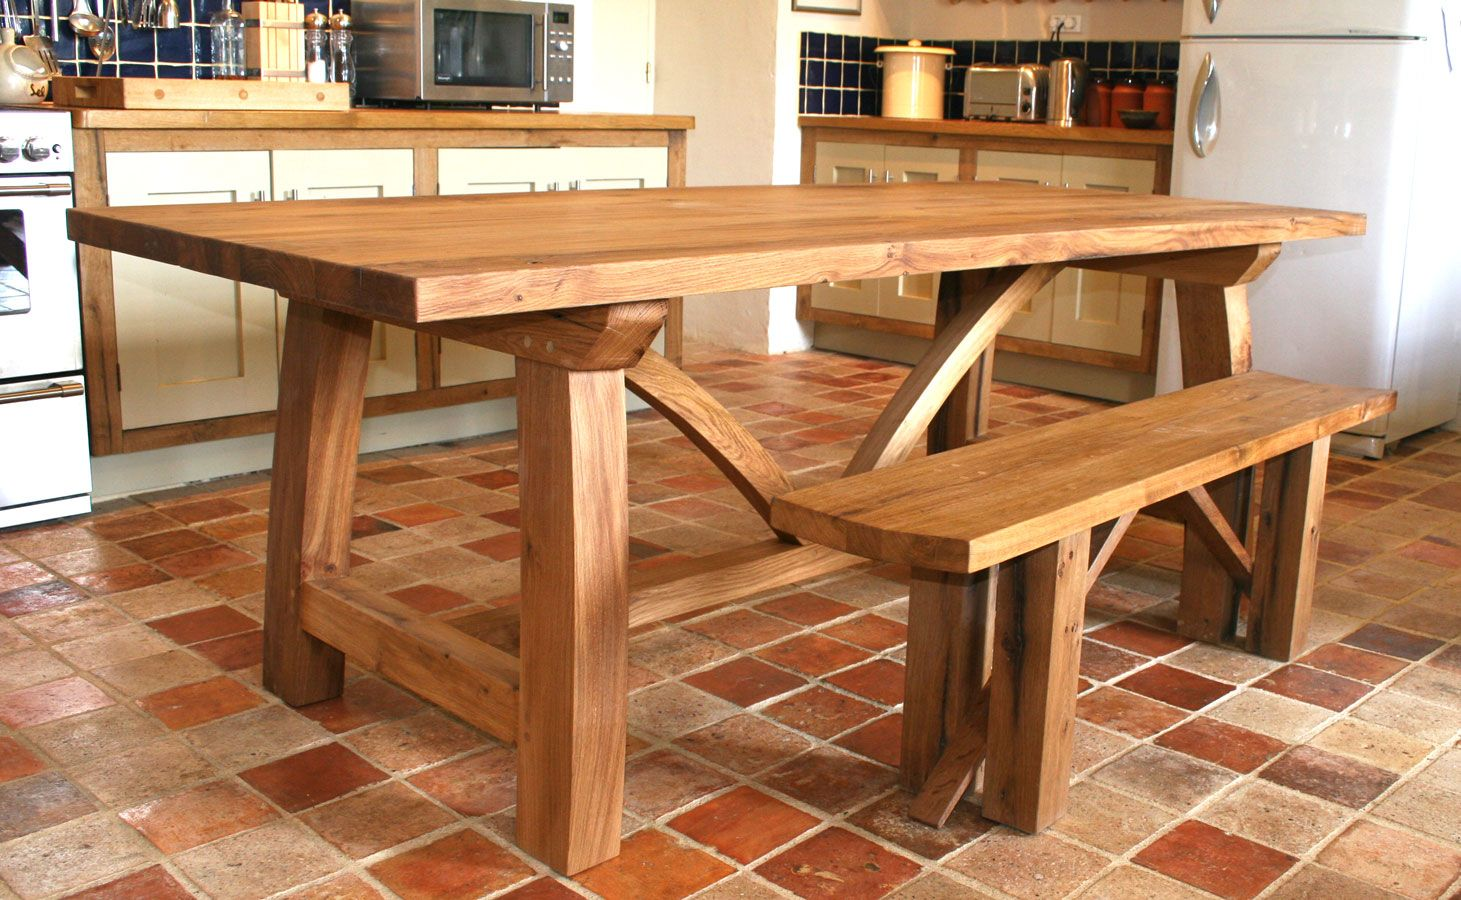 Bespoke Refectory Table  Handmade Oak Dining Room & Kitchen